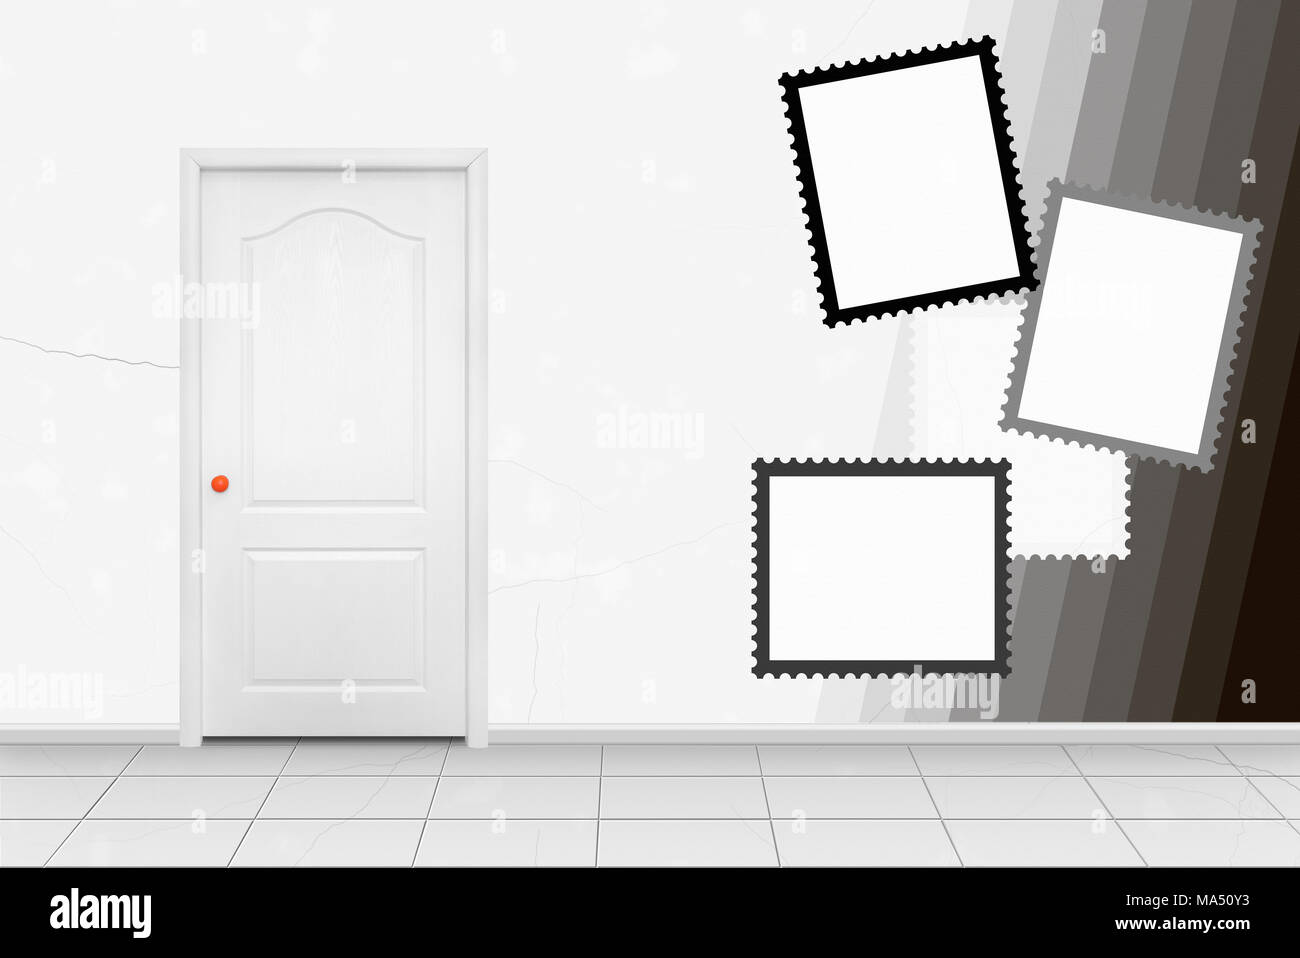 Home Interior White Inside Door In The Orange Handle In Front Of Frames Of Postage Stamps Wall Background Stock Photo Alamy